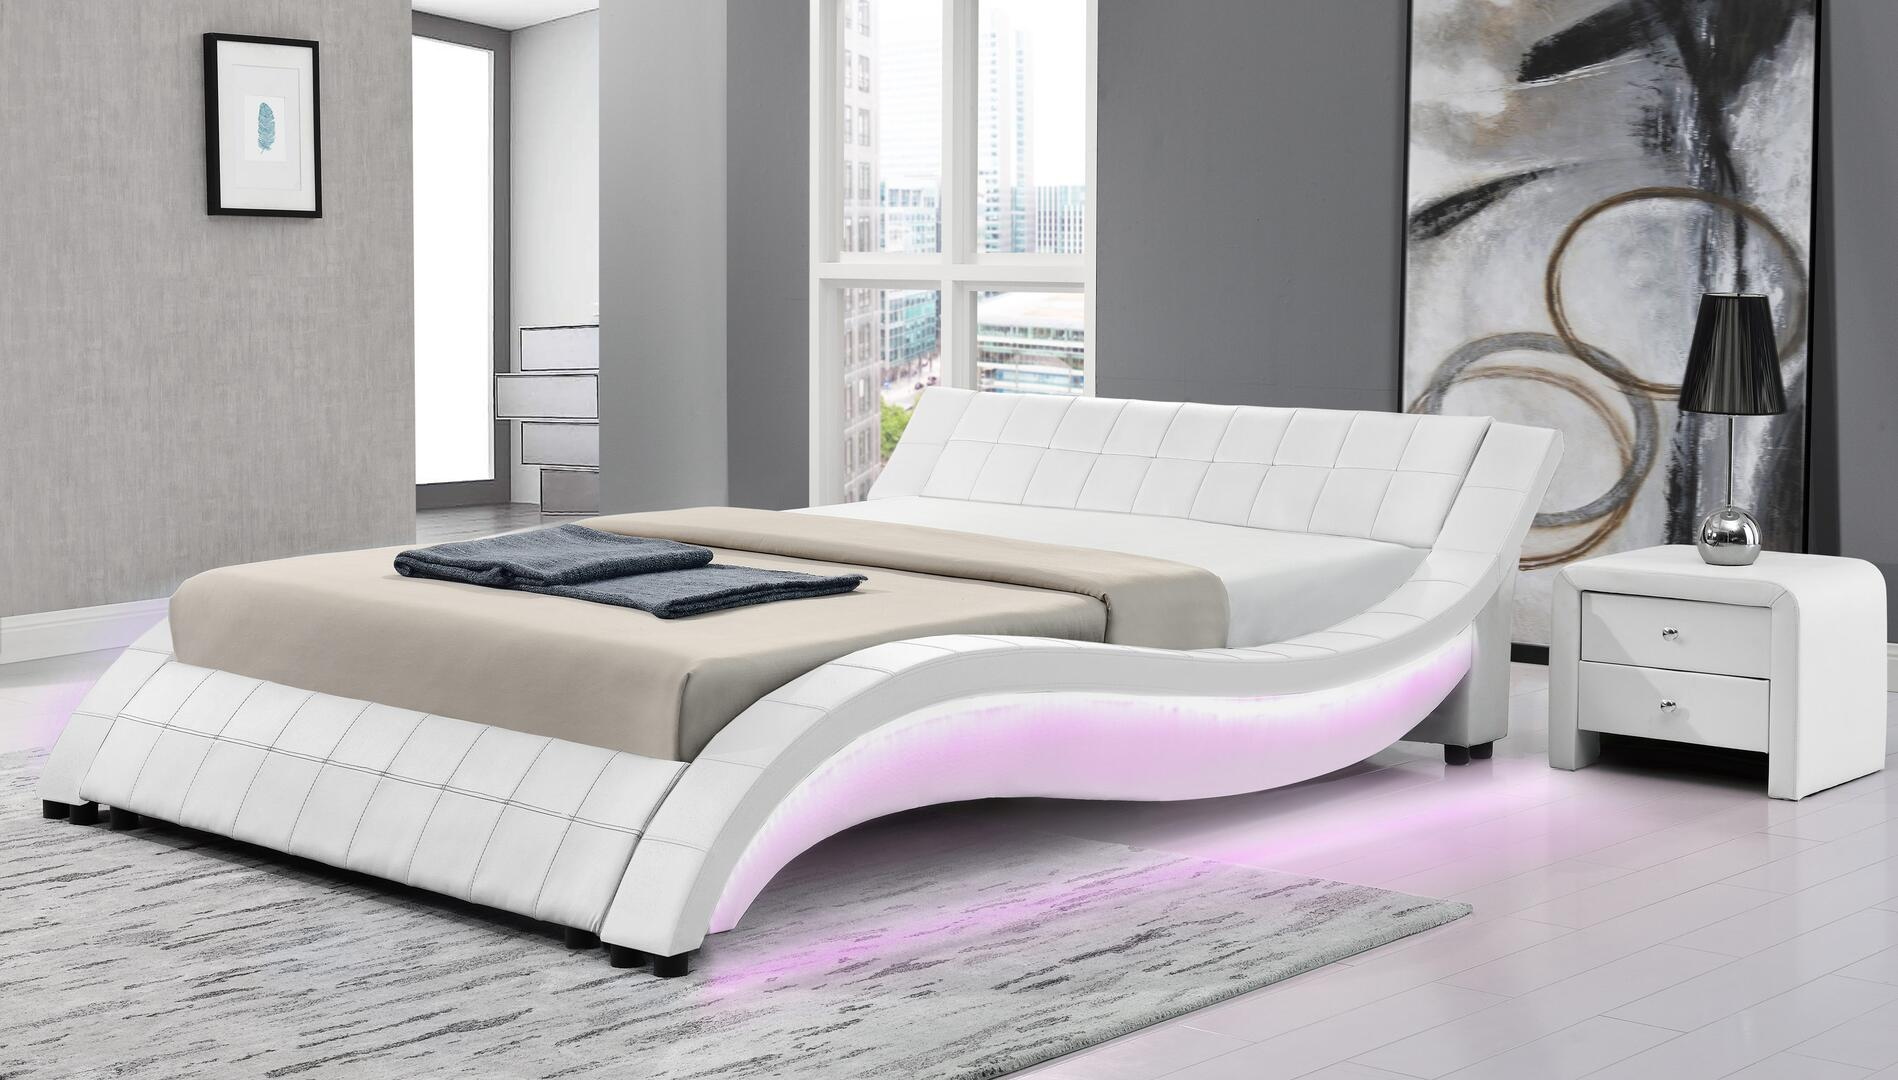 auroraqnwh21 LED Beds